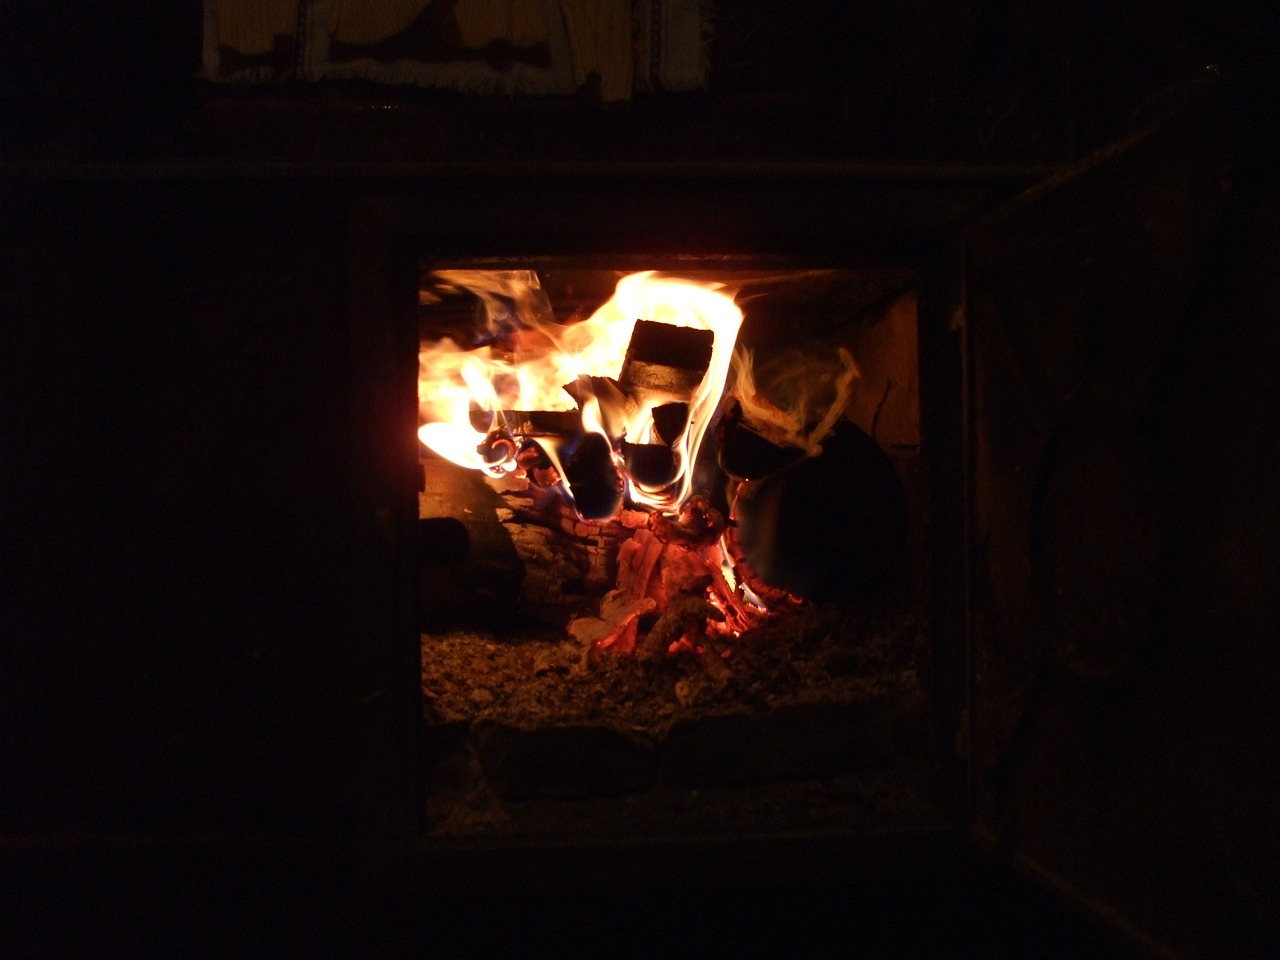 rural fireplace fireplace fire free photo